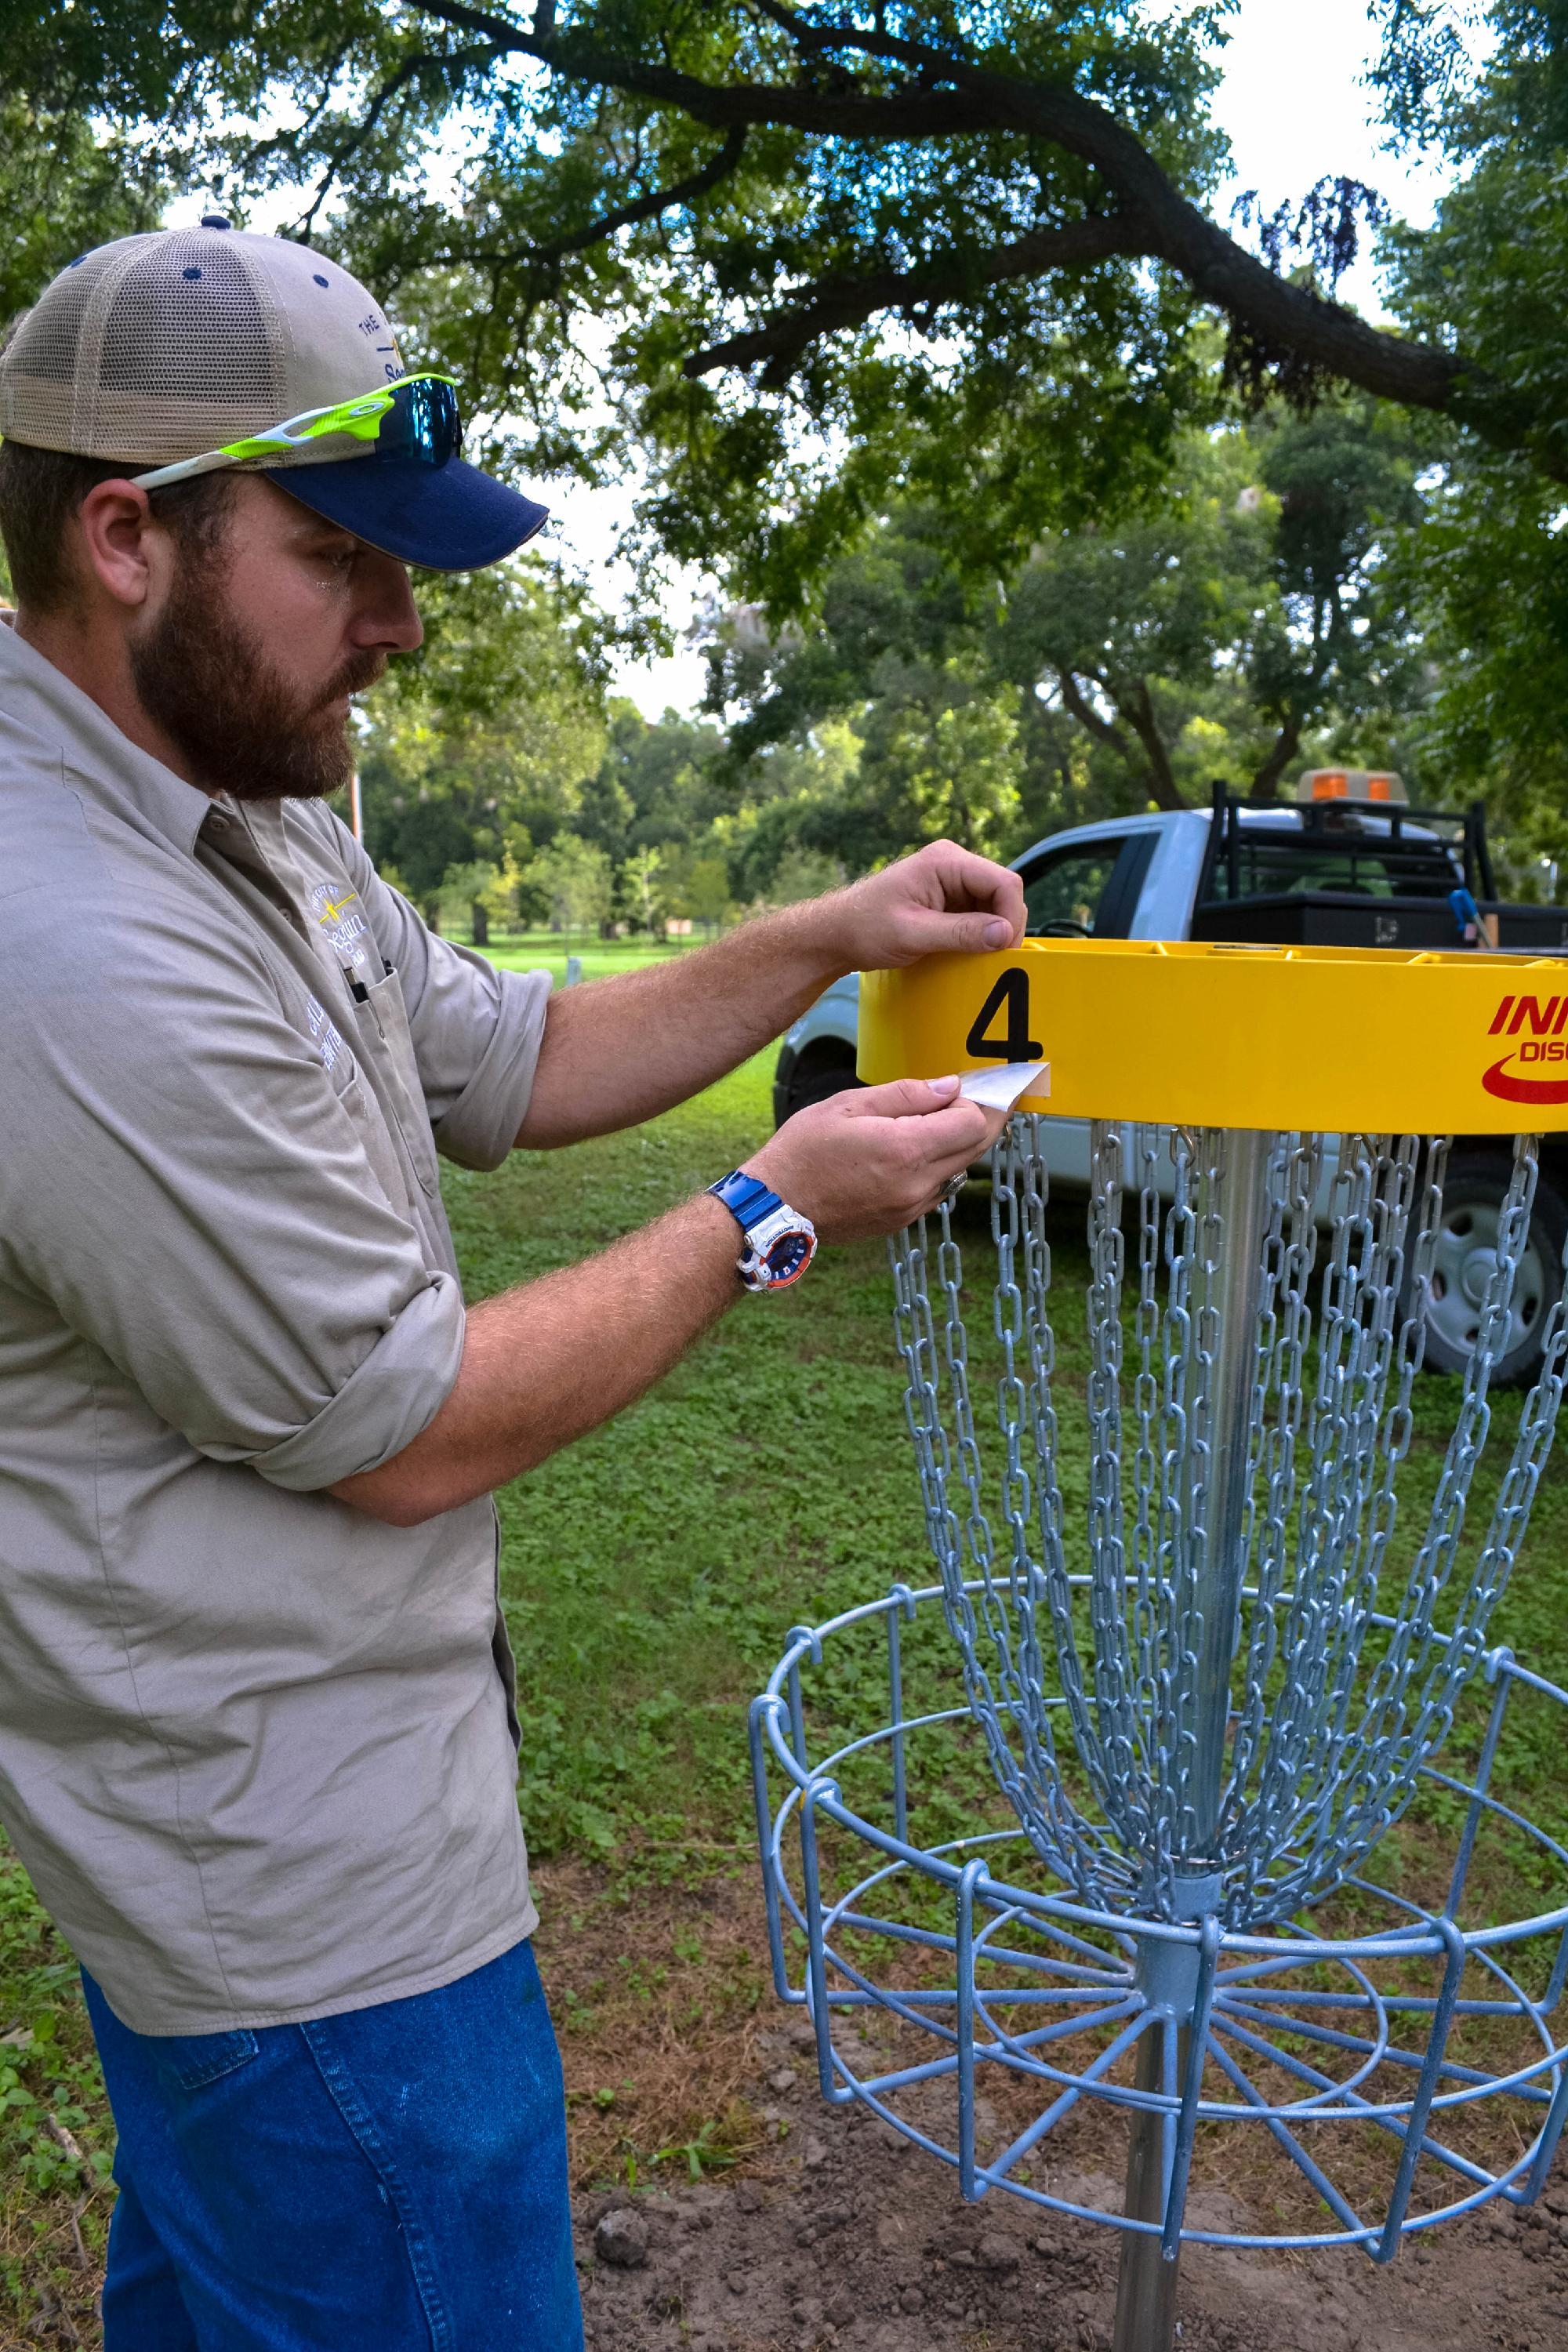 Disc_Golf_Basket_Install_(24_of_27)